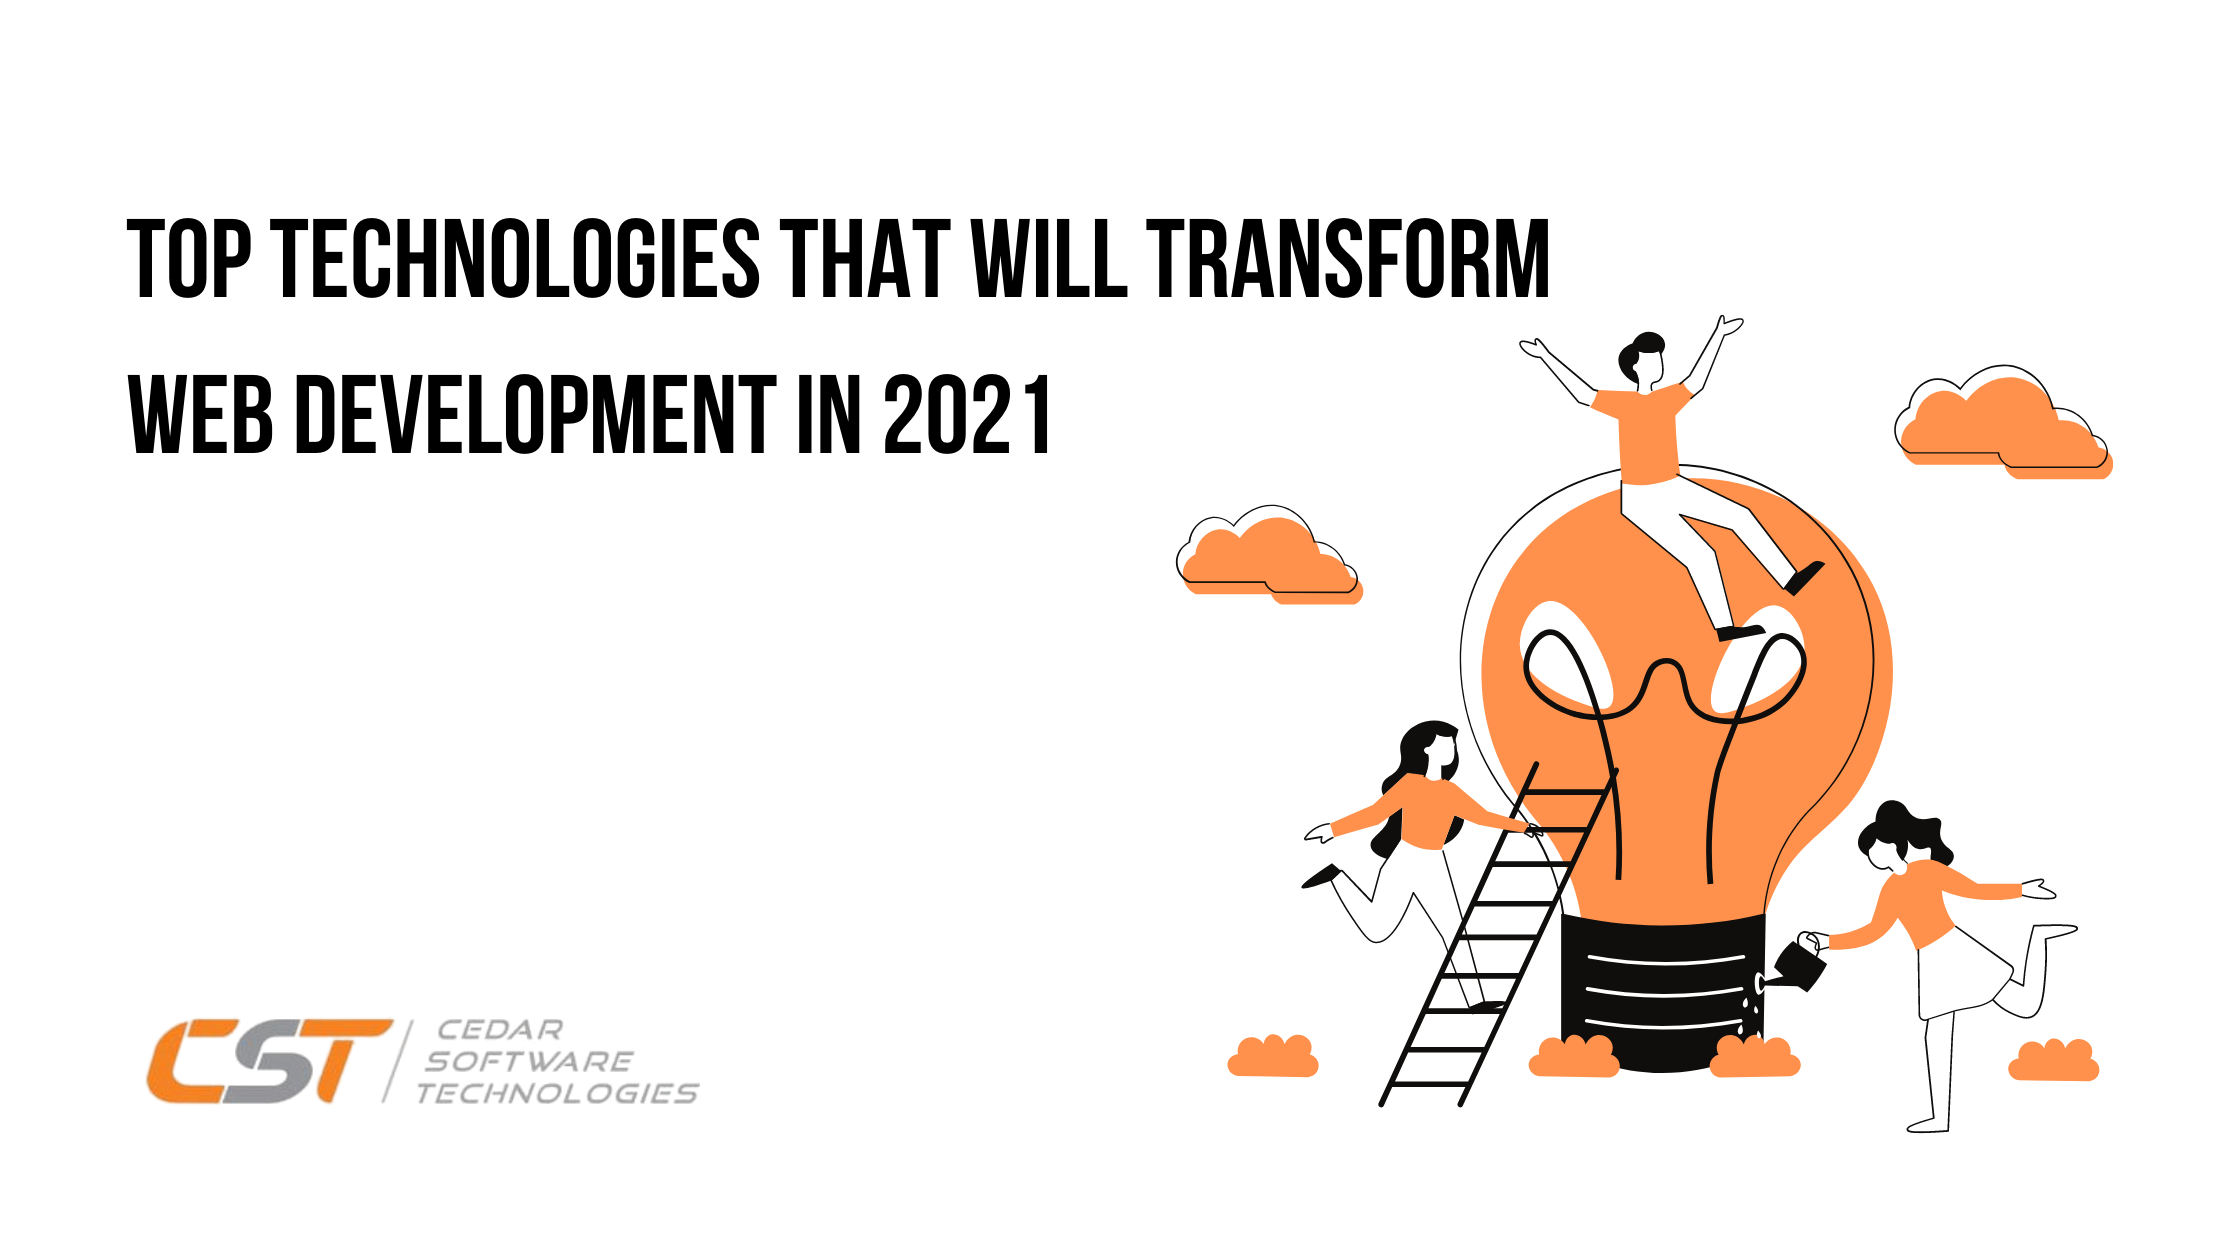 Top technologies that will transform web development in 2021